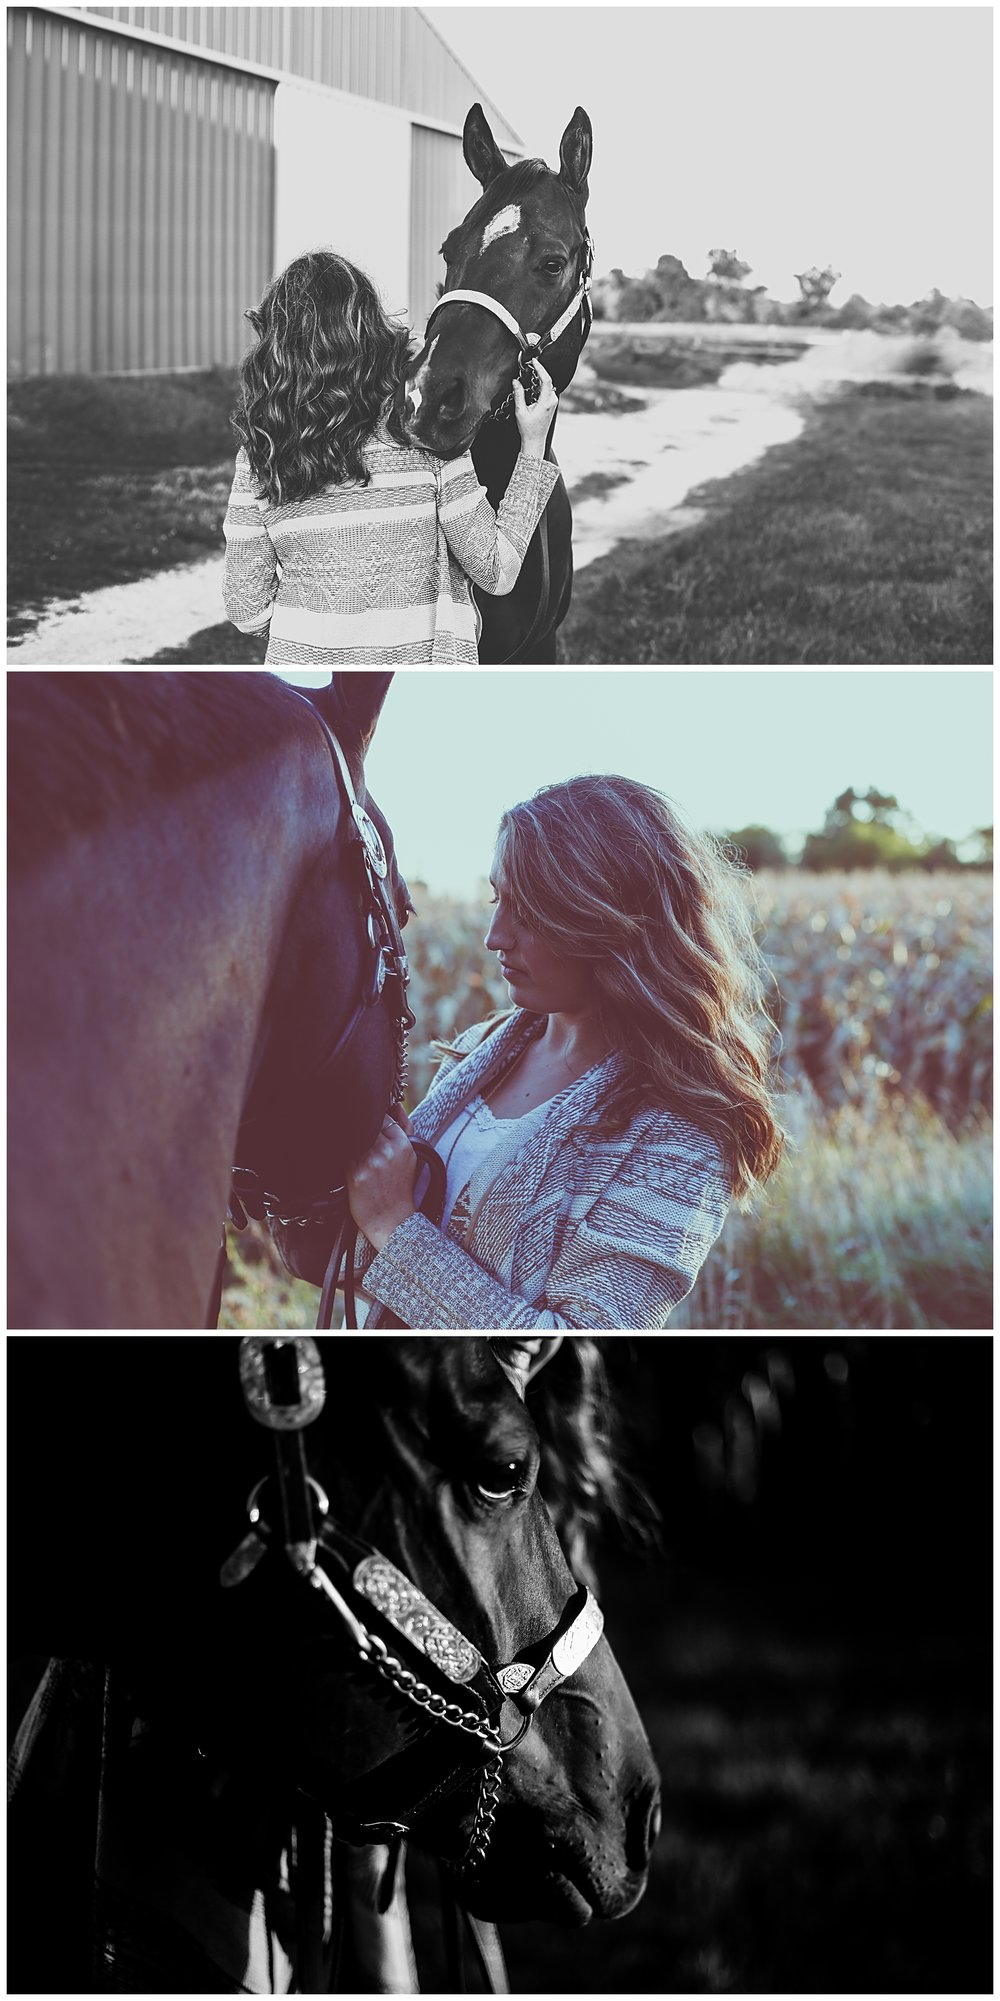 Show halter, horse love, girl and her horse